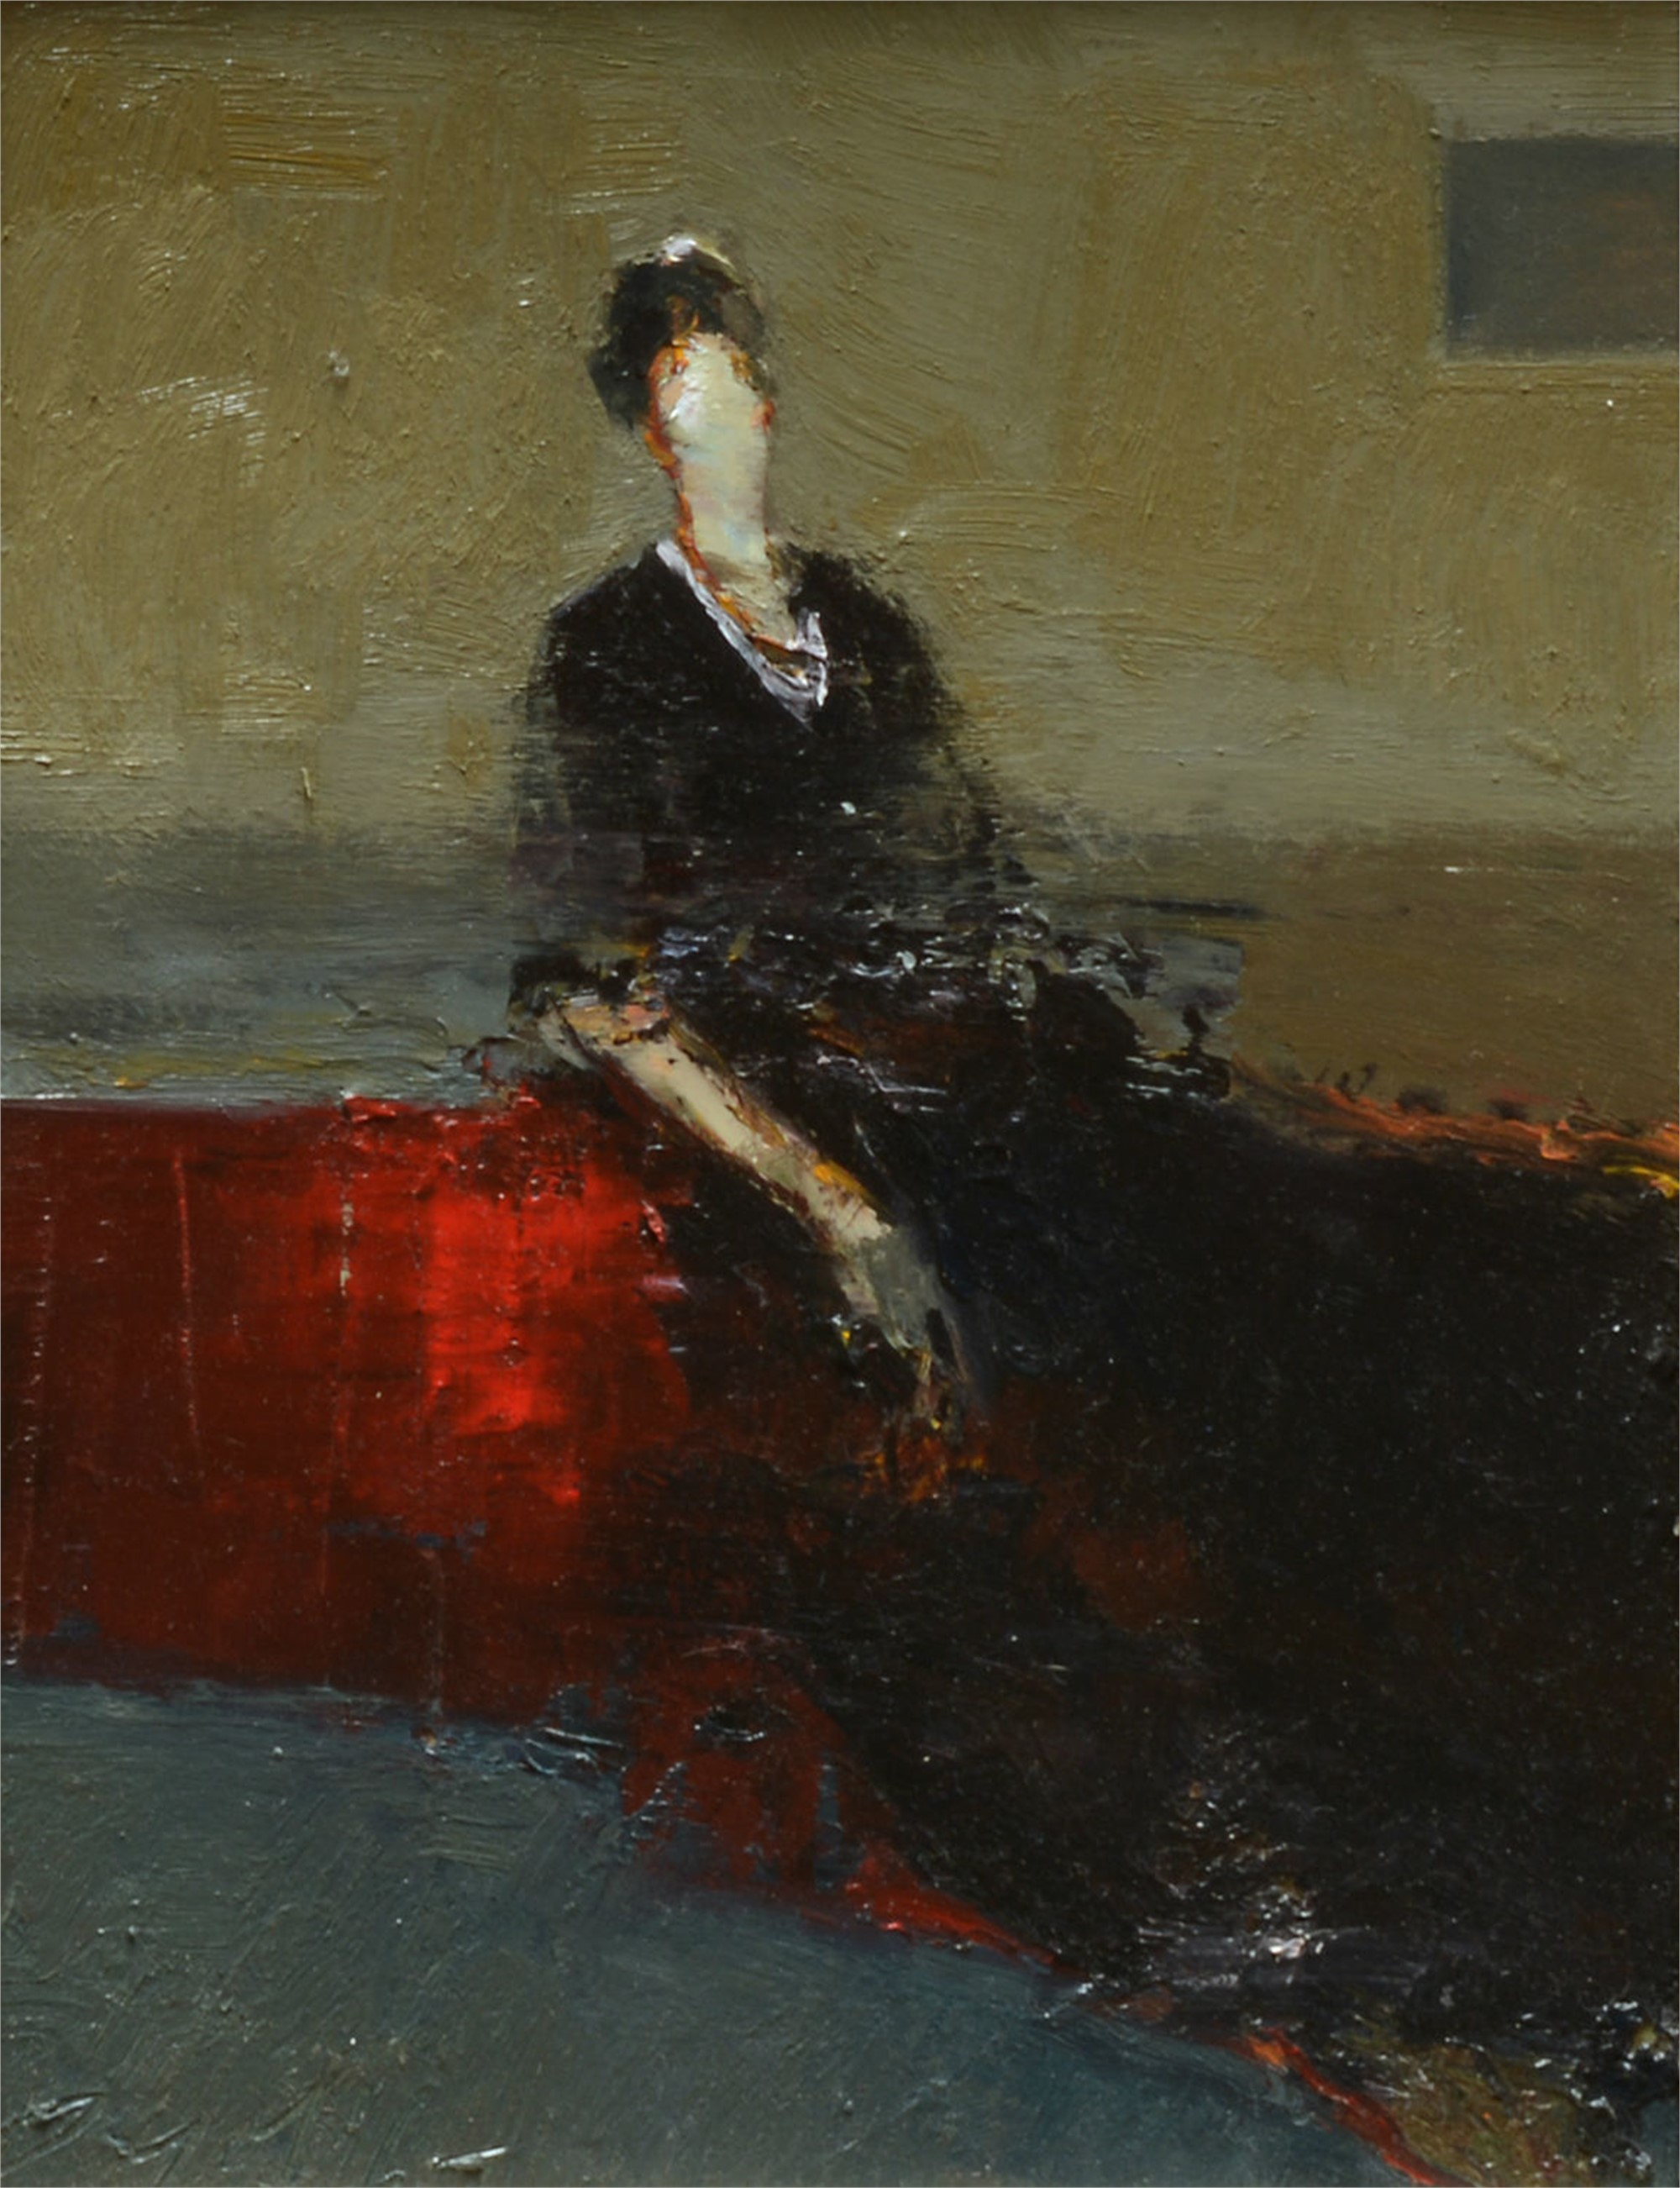 Solitude by Danny McCaw